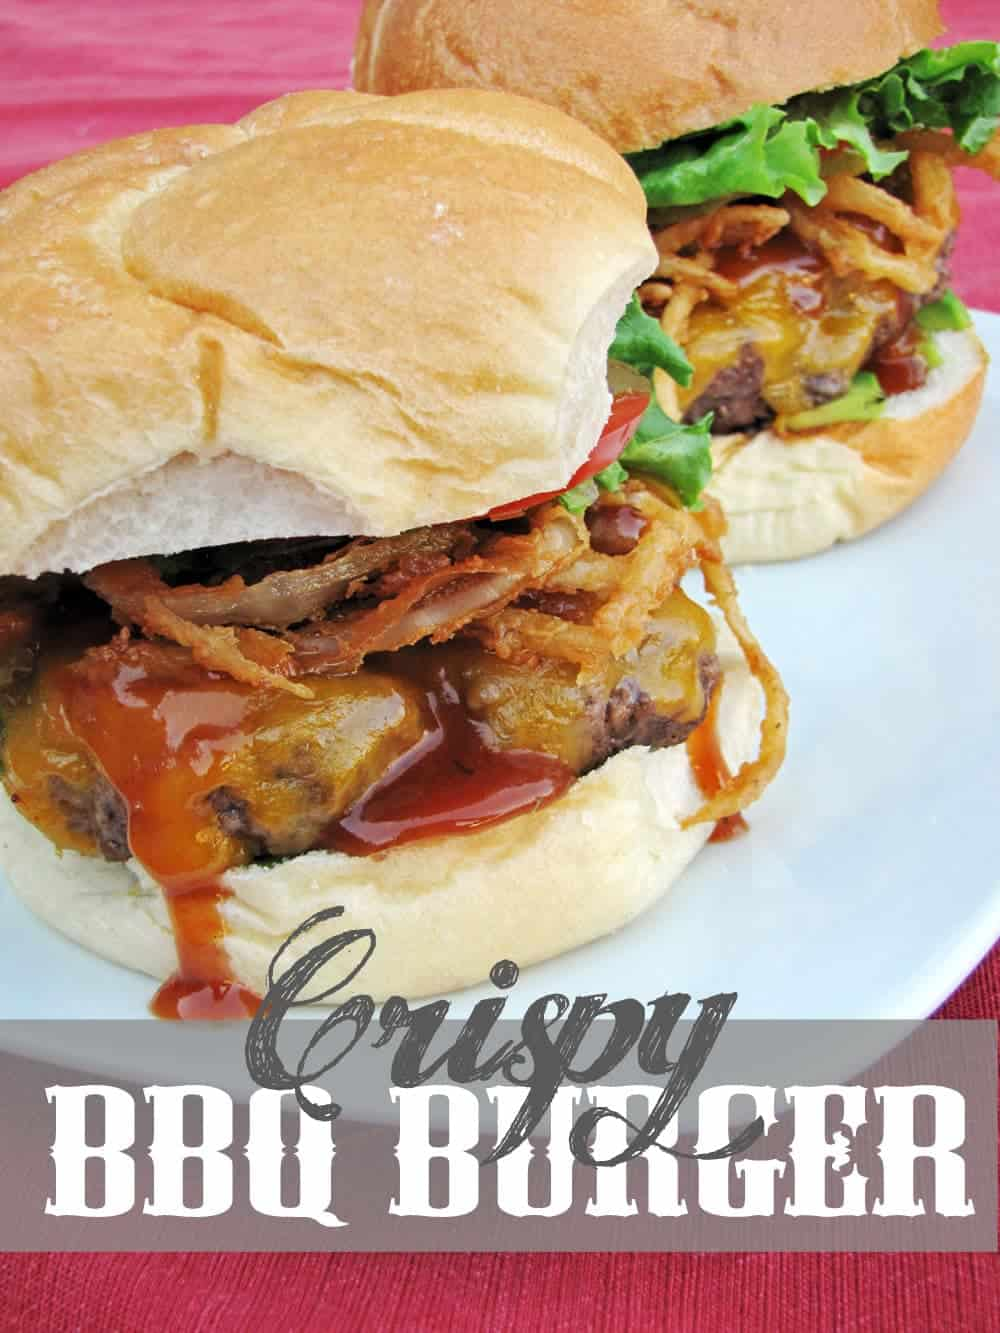 Two cheeseburgers topped with crispy fried onion straws. lettuce, tomato, and BBQ sauce on white plate.